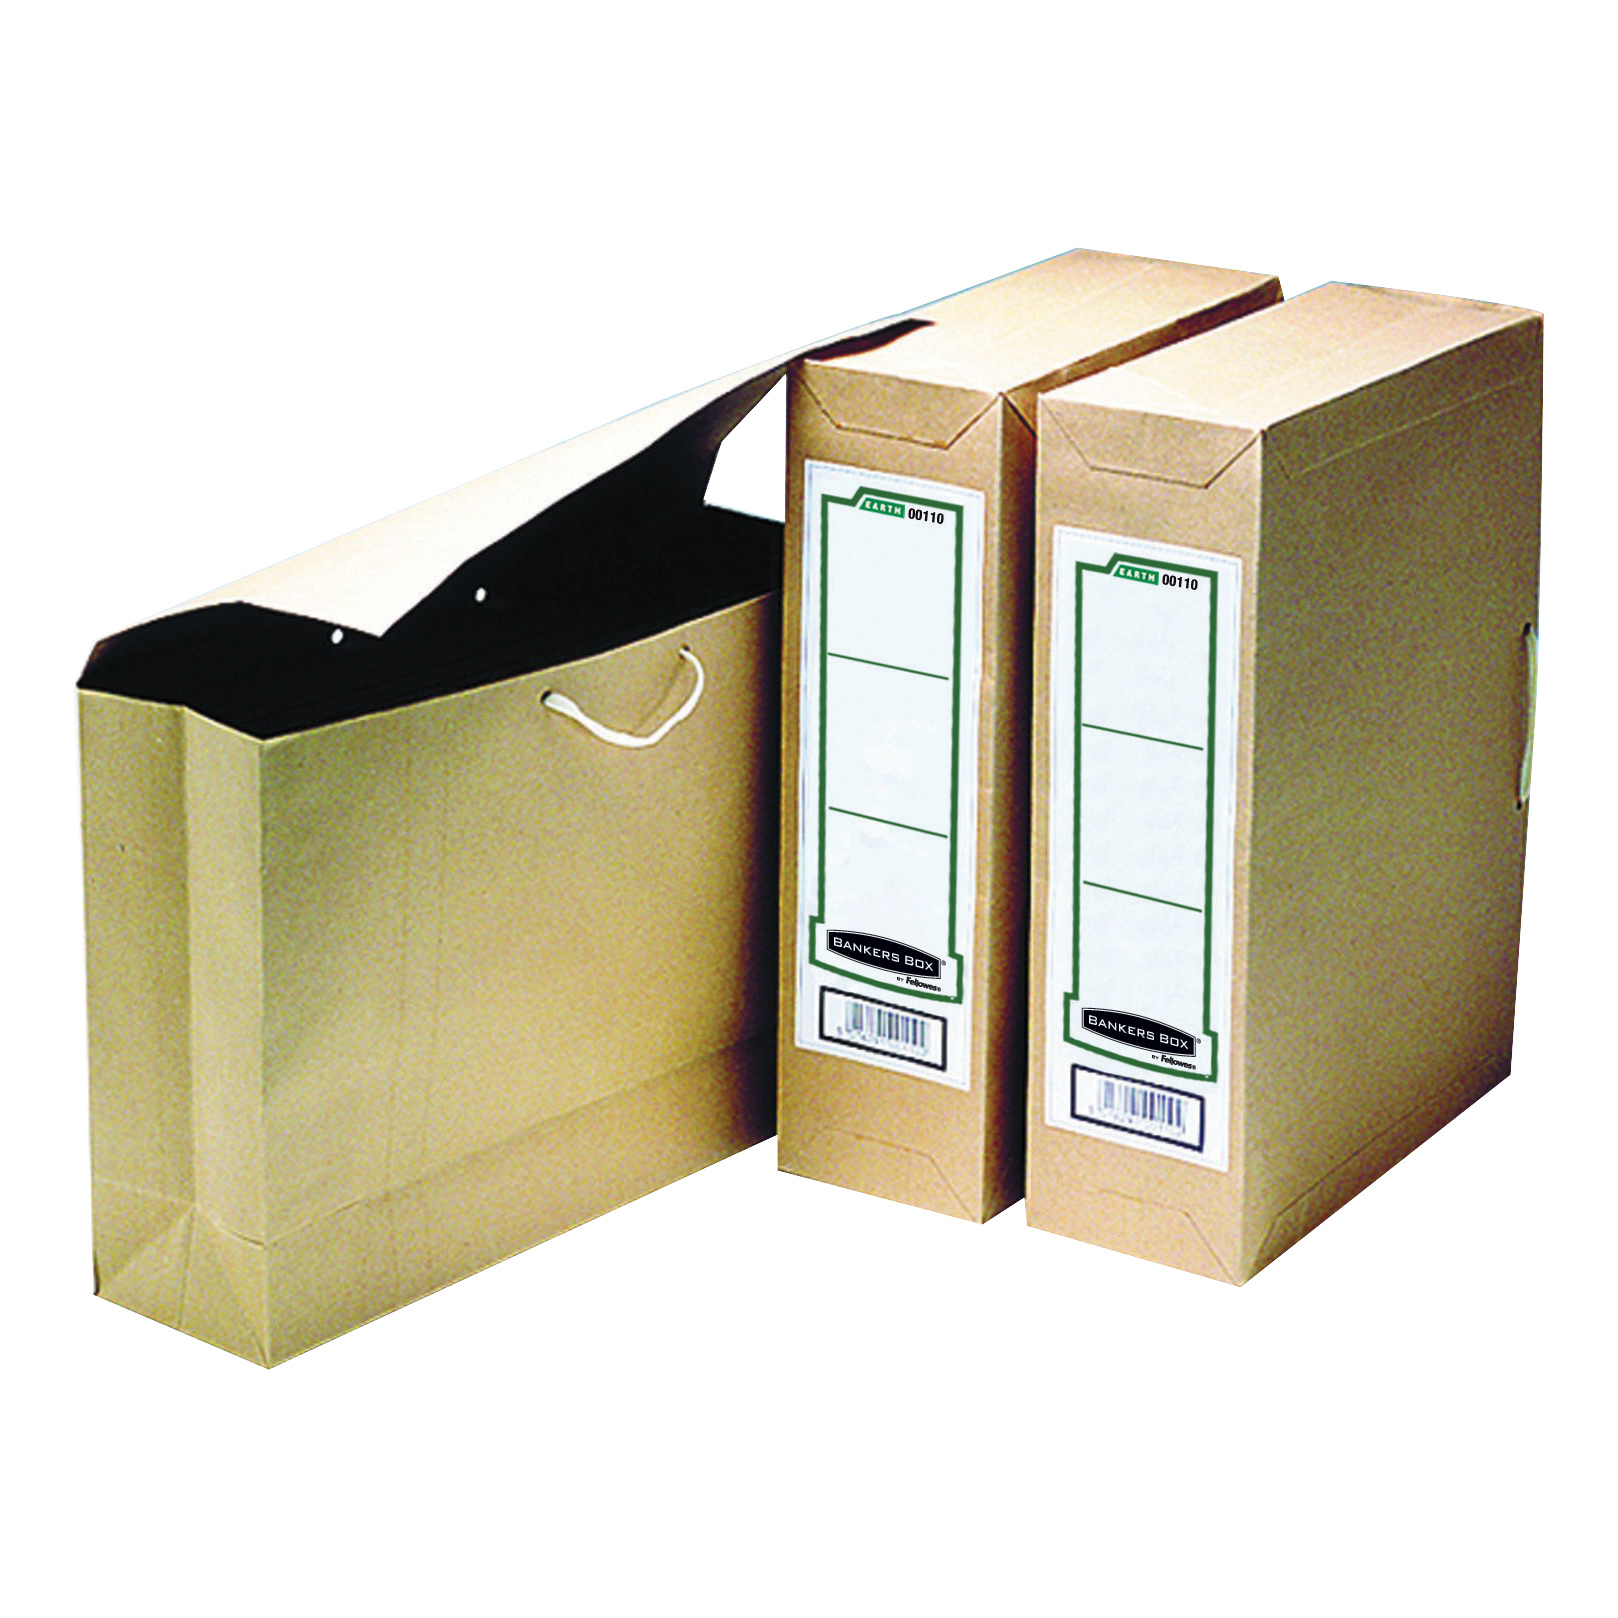 Transfer Files Bankers Box by Fellowes Basics Storage Bag File Foolscap W101xD254xH356mm Ref 00110 Pack 25